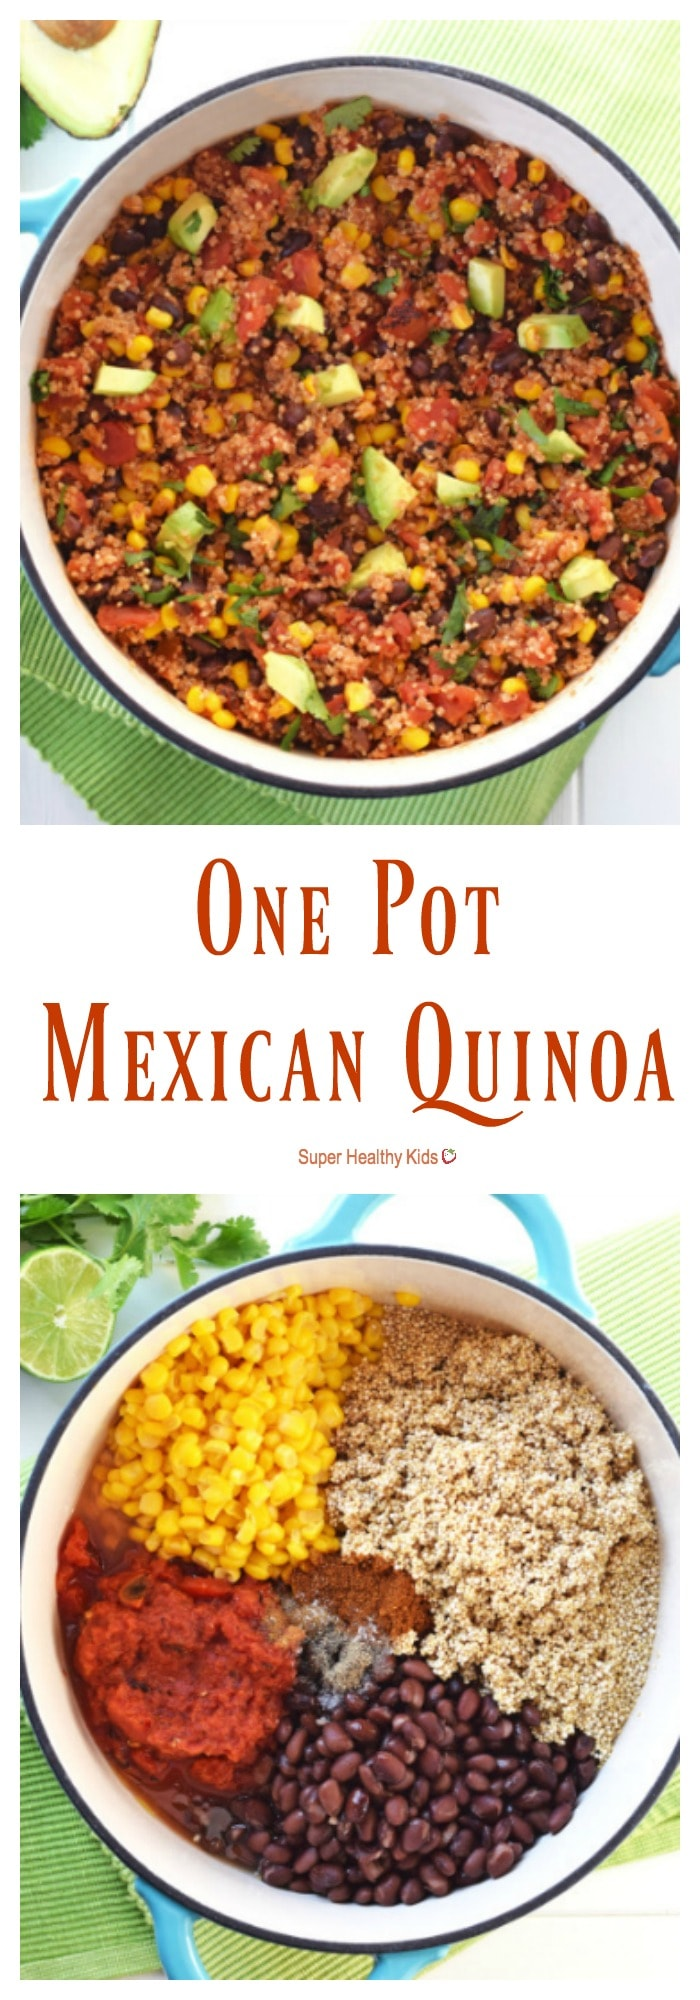 FOOD - One Pot Mexican Quinoa. Packed with protein and vegetables, it only takes 20 minutes to have this healthy, nutritious, gluten free dish on the table! https://www.superhealthykids.com/one-pot-mexican-quinoa/